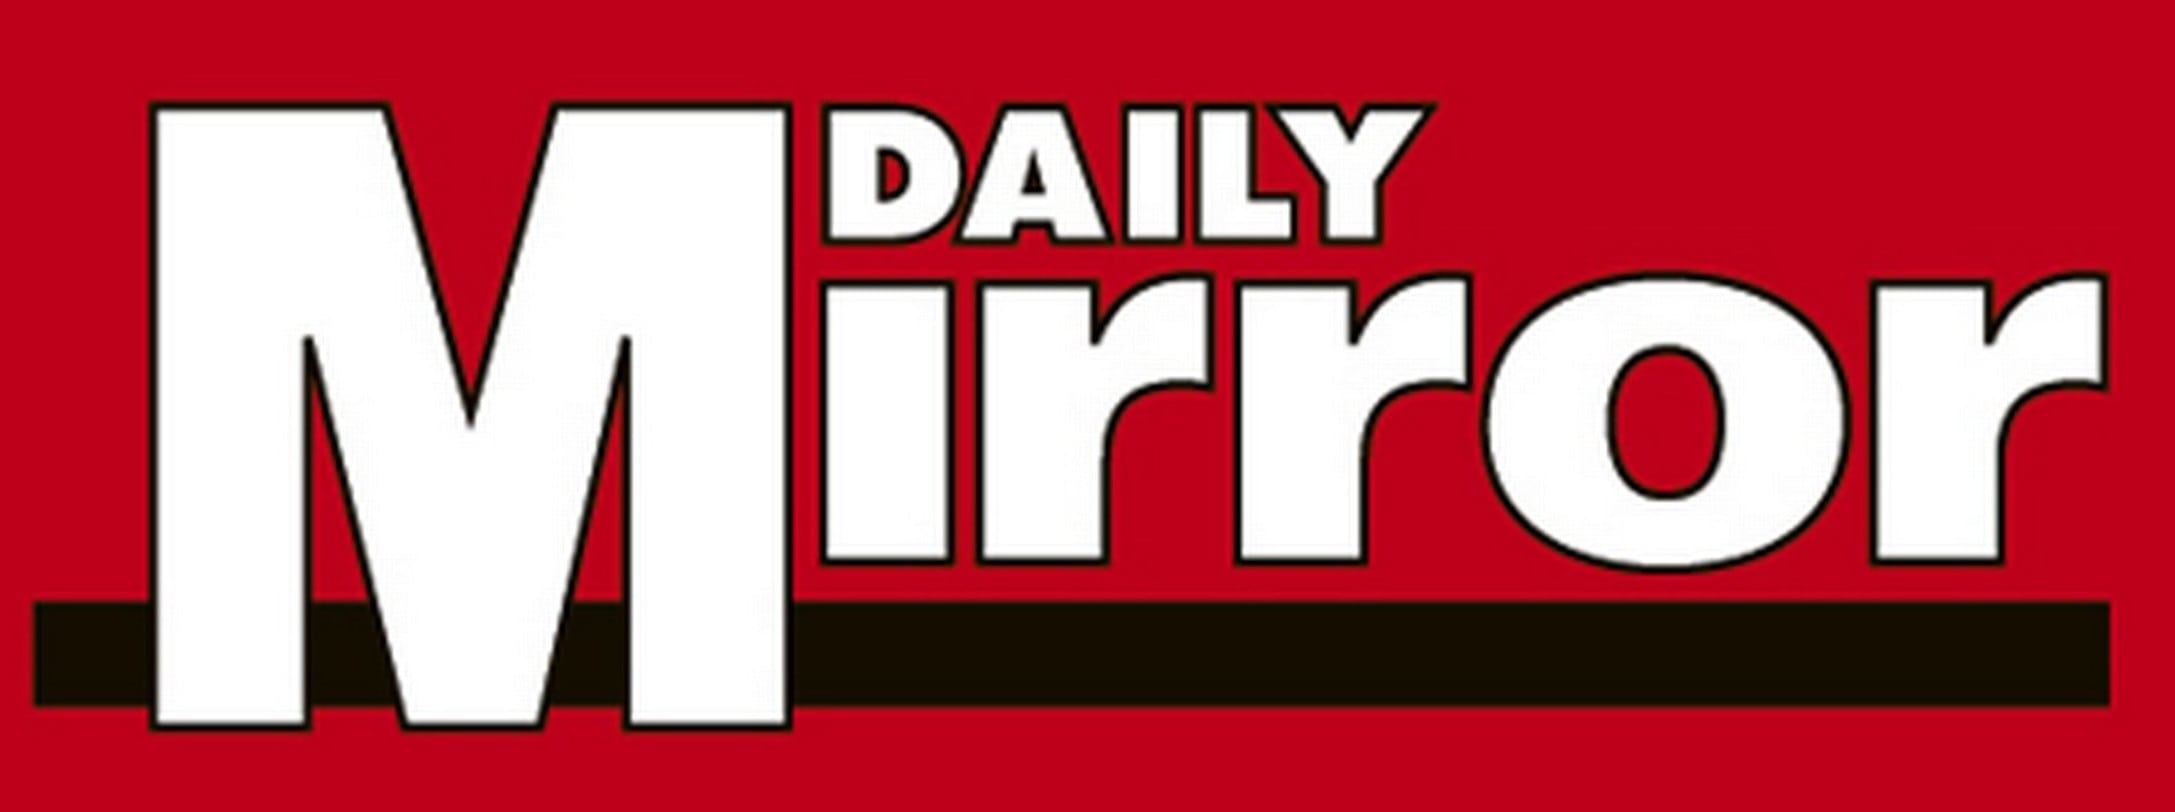 Sell a Story to the Daily Mirror Daily Mirror